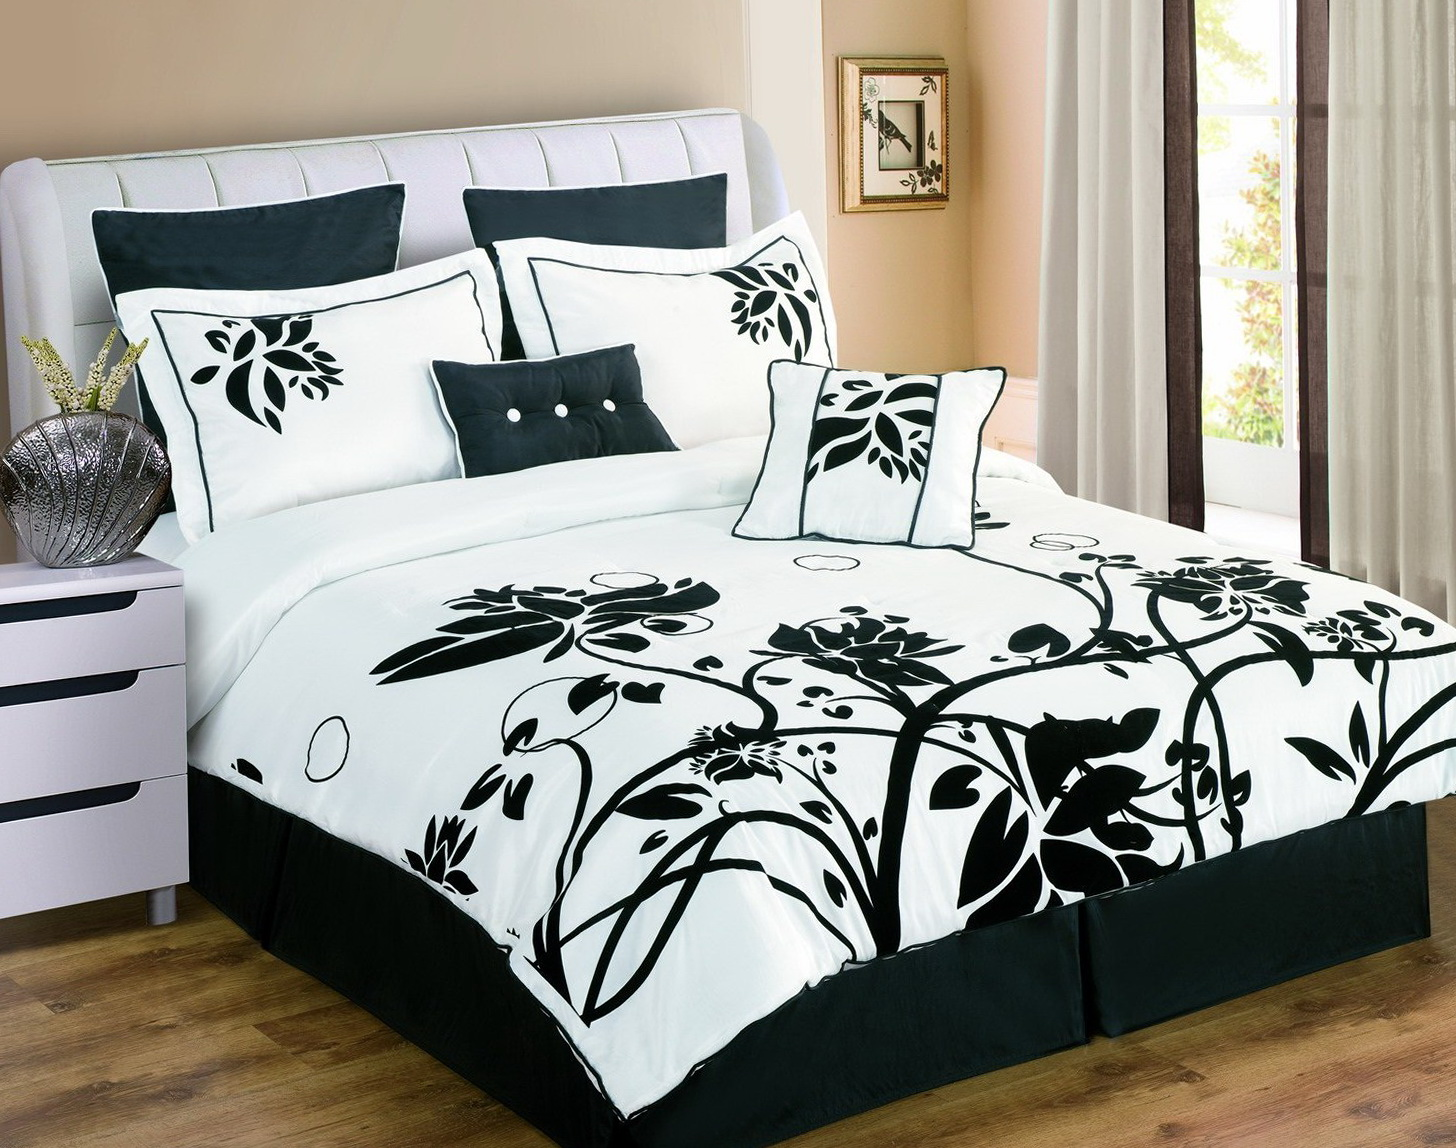 King And Queen Bed Set